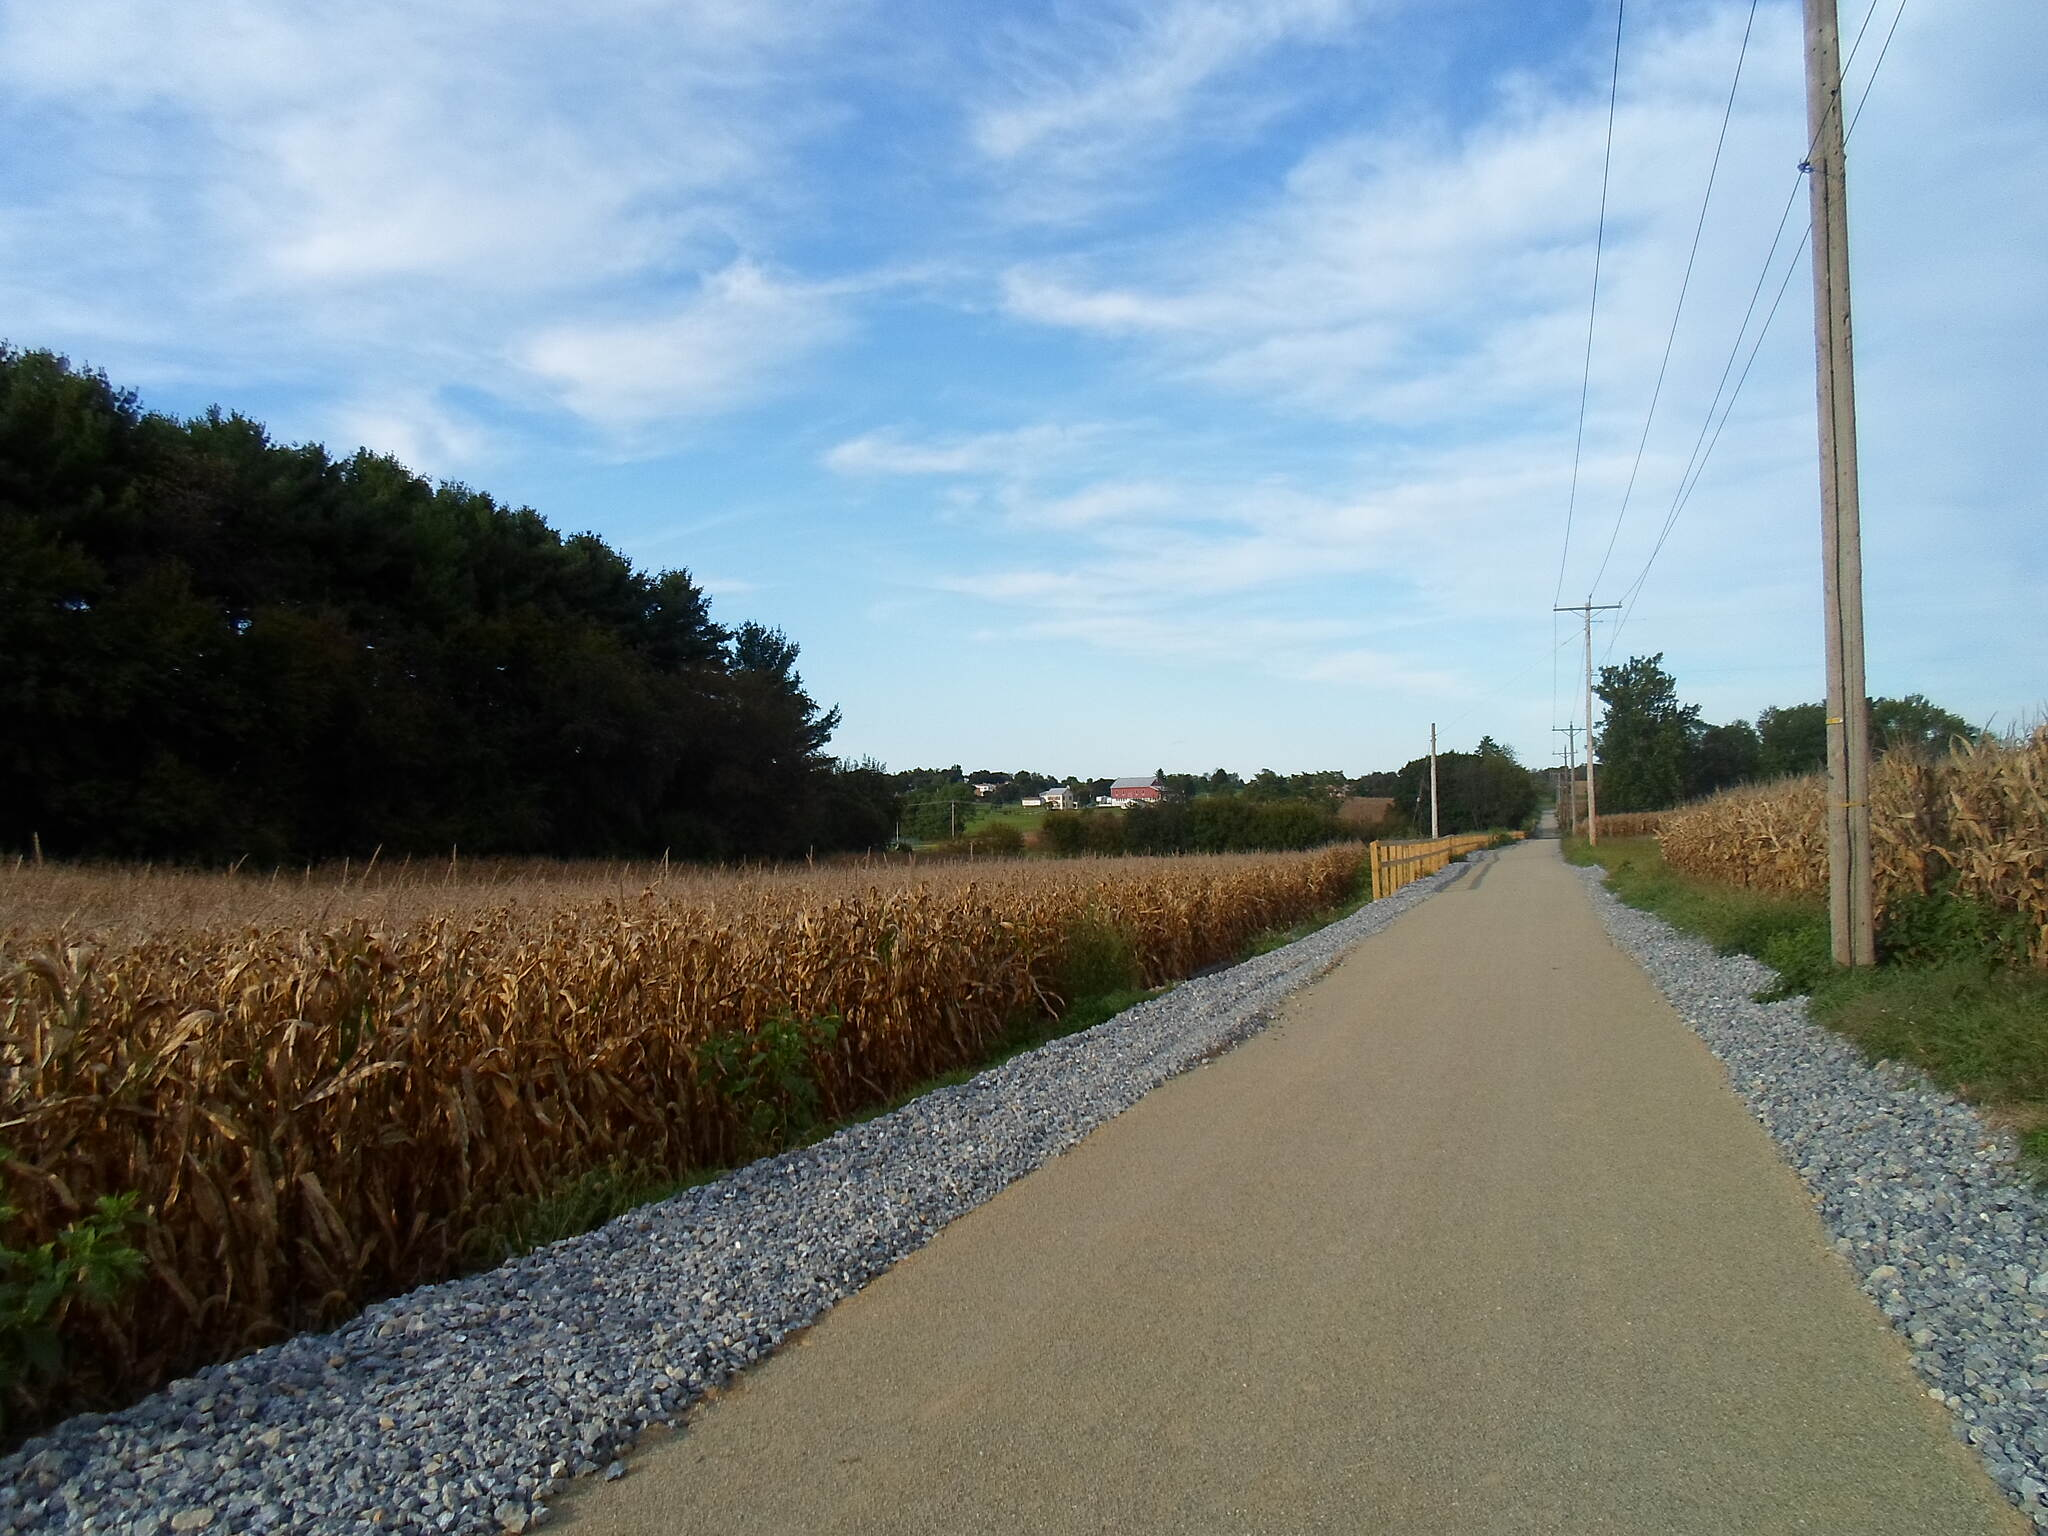 Hanover Trolley Trail Hanover Trolley Trail Passing through cornfields in rural southwest York County on a sunny, early fall day in September 2012.